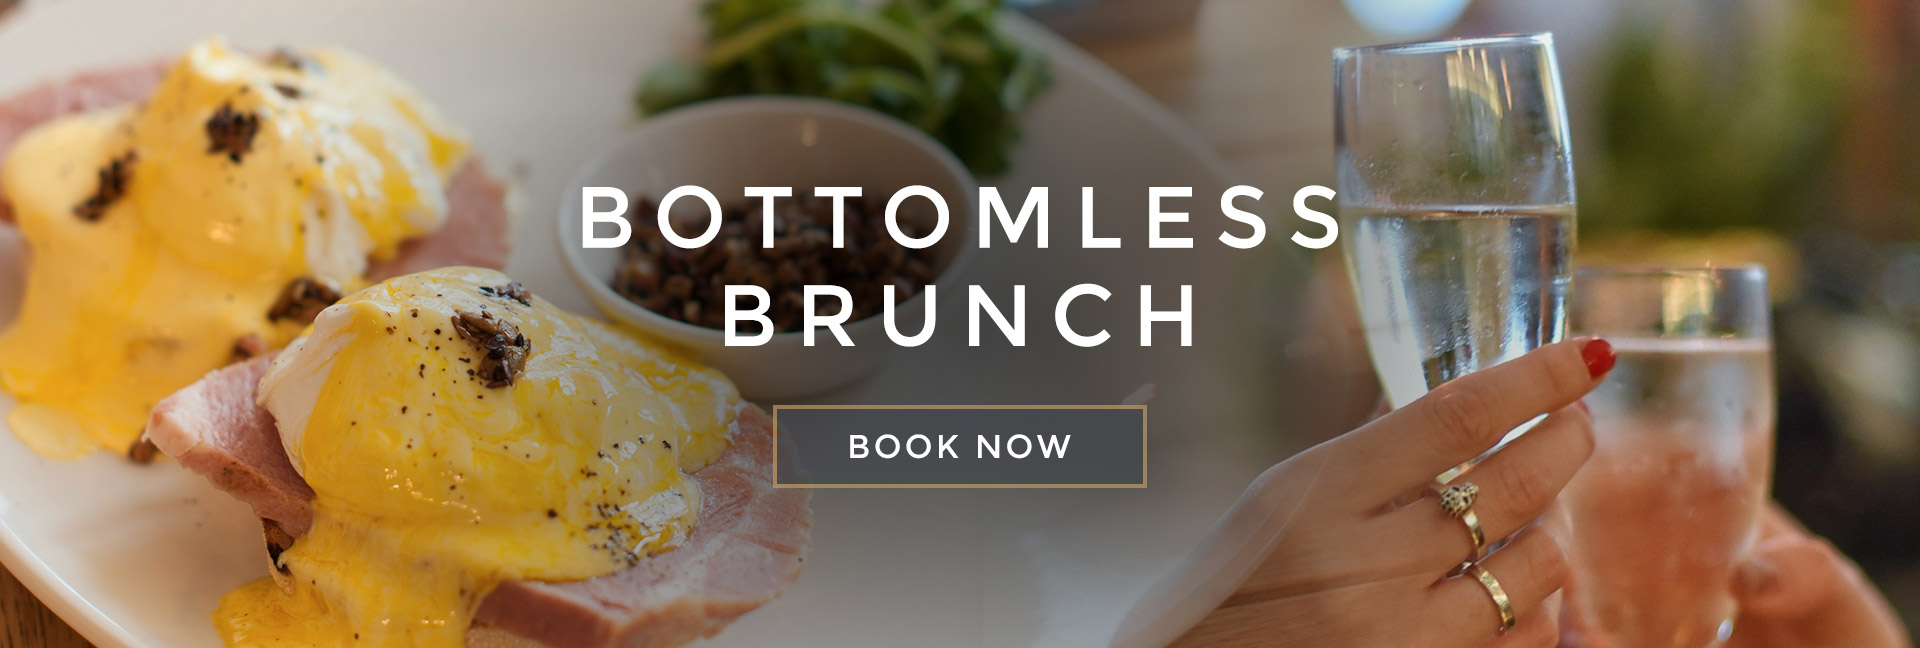 Bottomless Brunch at All Bar One Canary Wharf - Book now